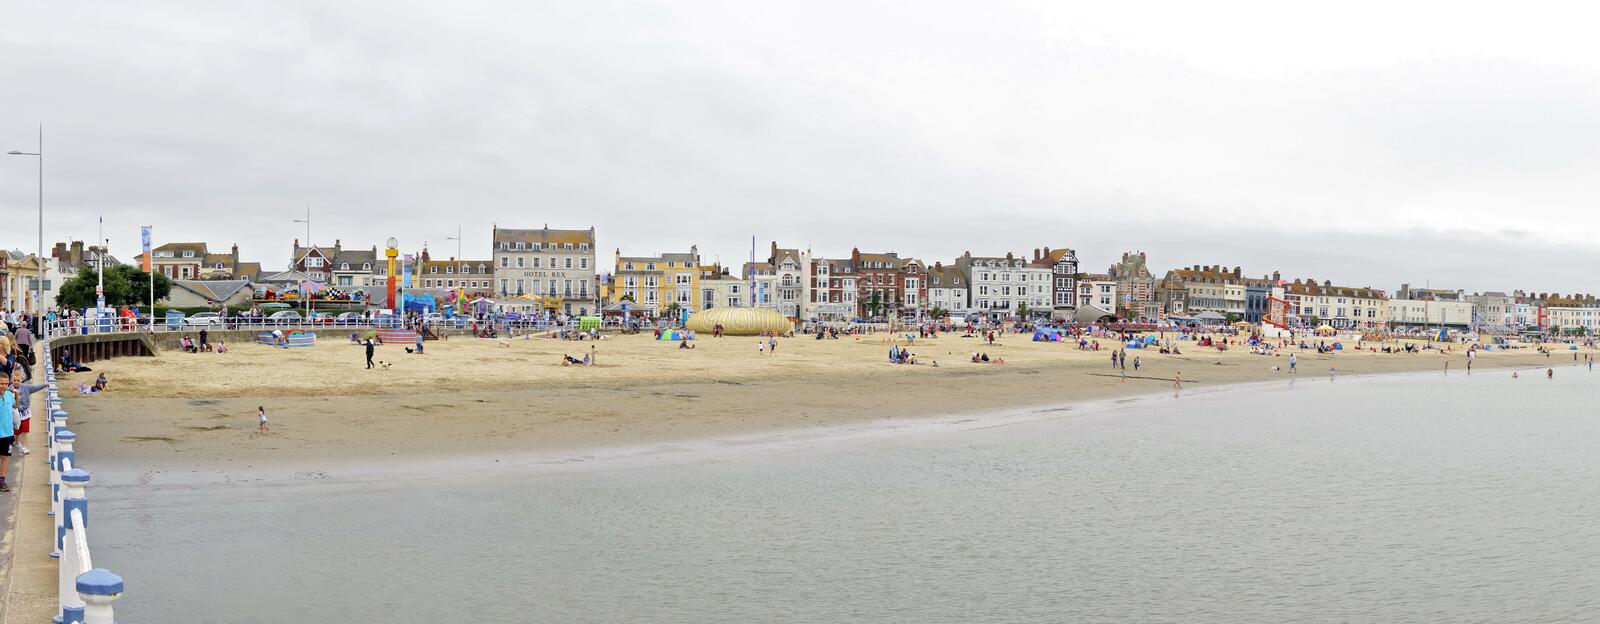 Weymouth photo stock